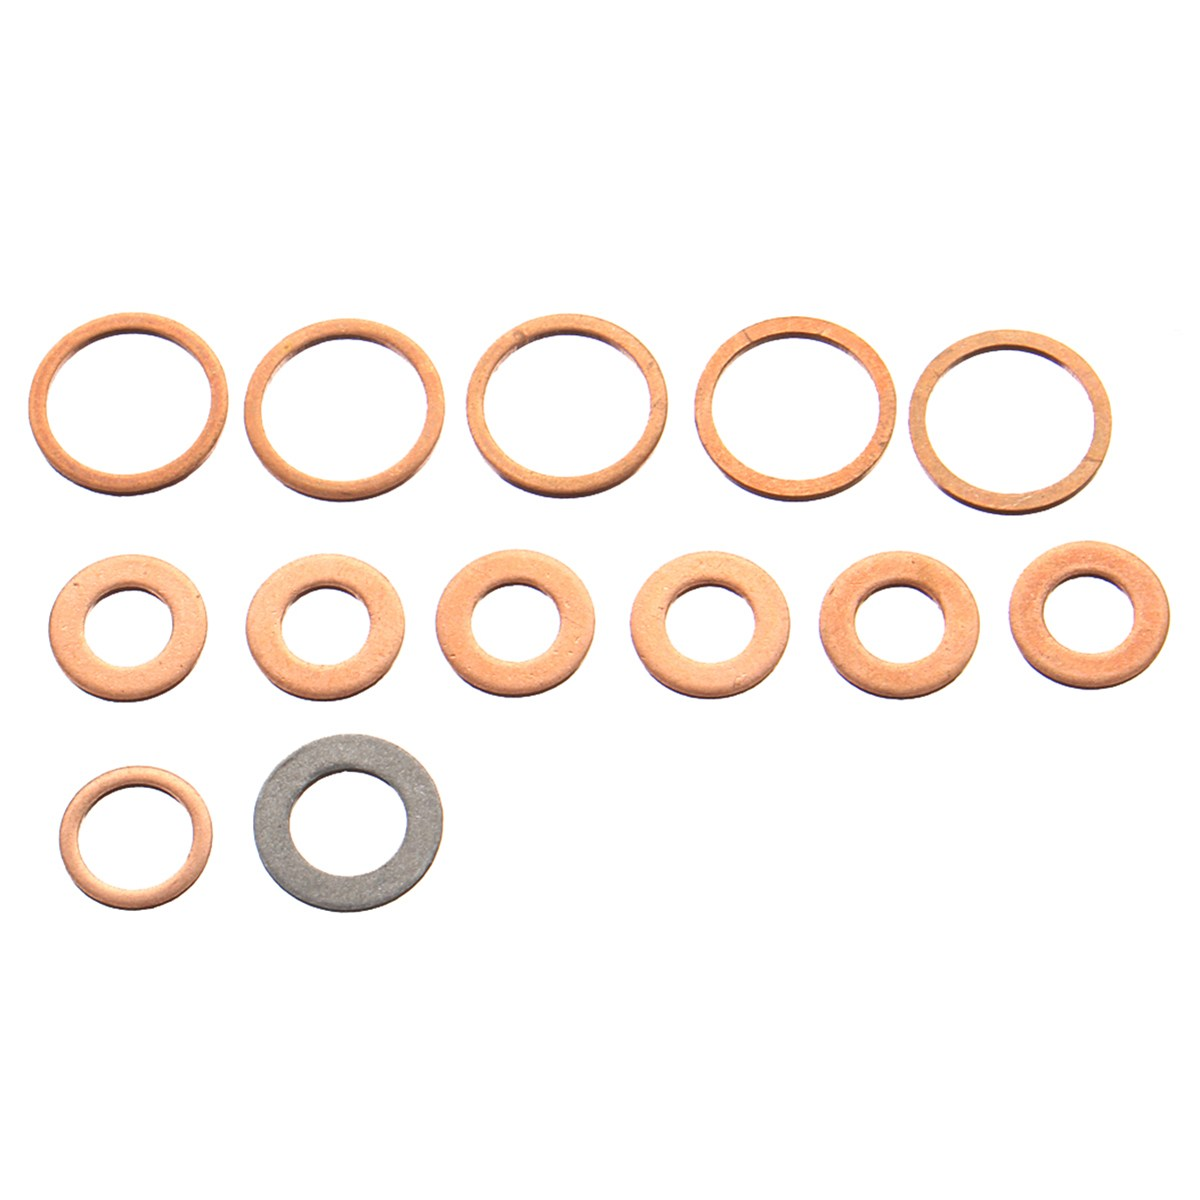 US $6 24 21% OFF|Injection Pump Repair Seal Kit For VW Beetle Golf Jetta  for Audi 1 9 TDI 2467010003-in Seals from Automobiles & Motorcycles on